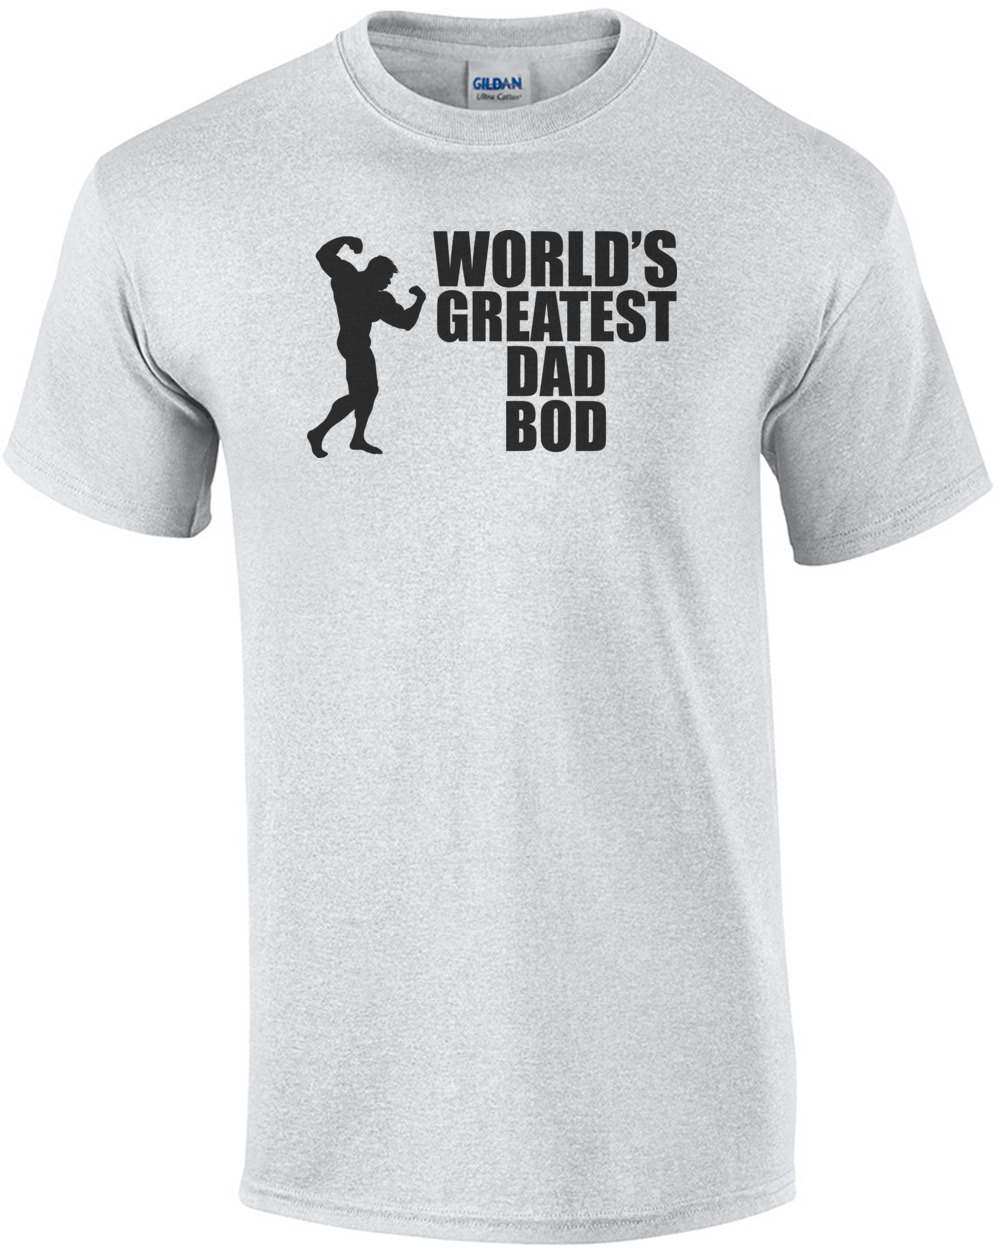 93a96c98 World's Greatest Dad Bod T-Shirt